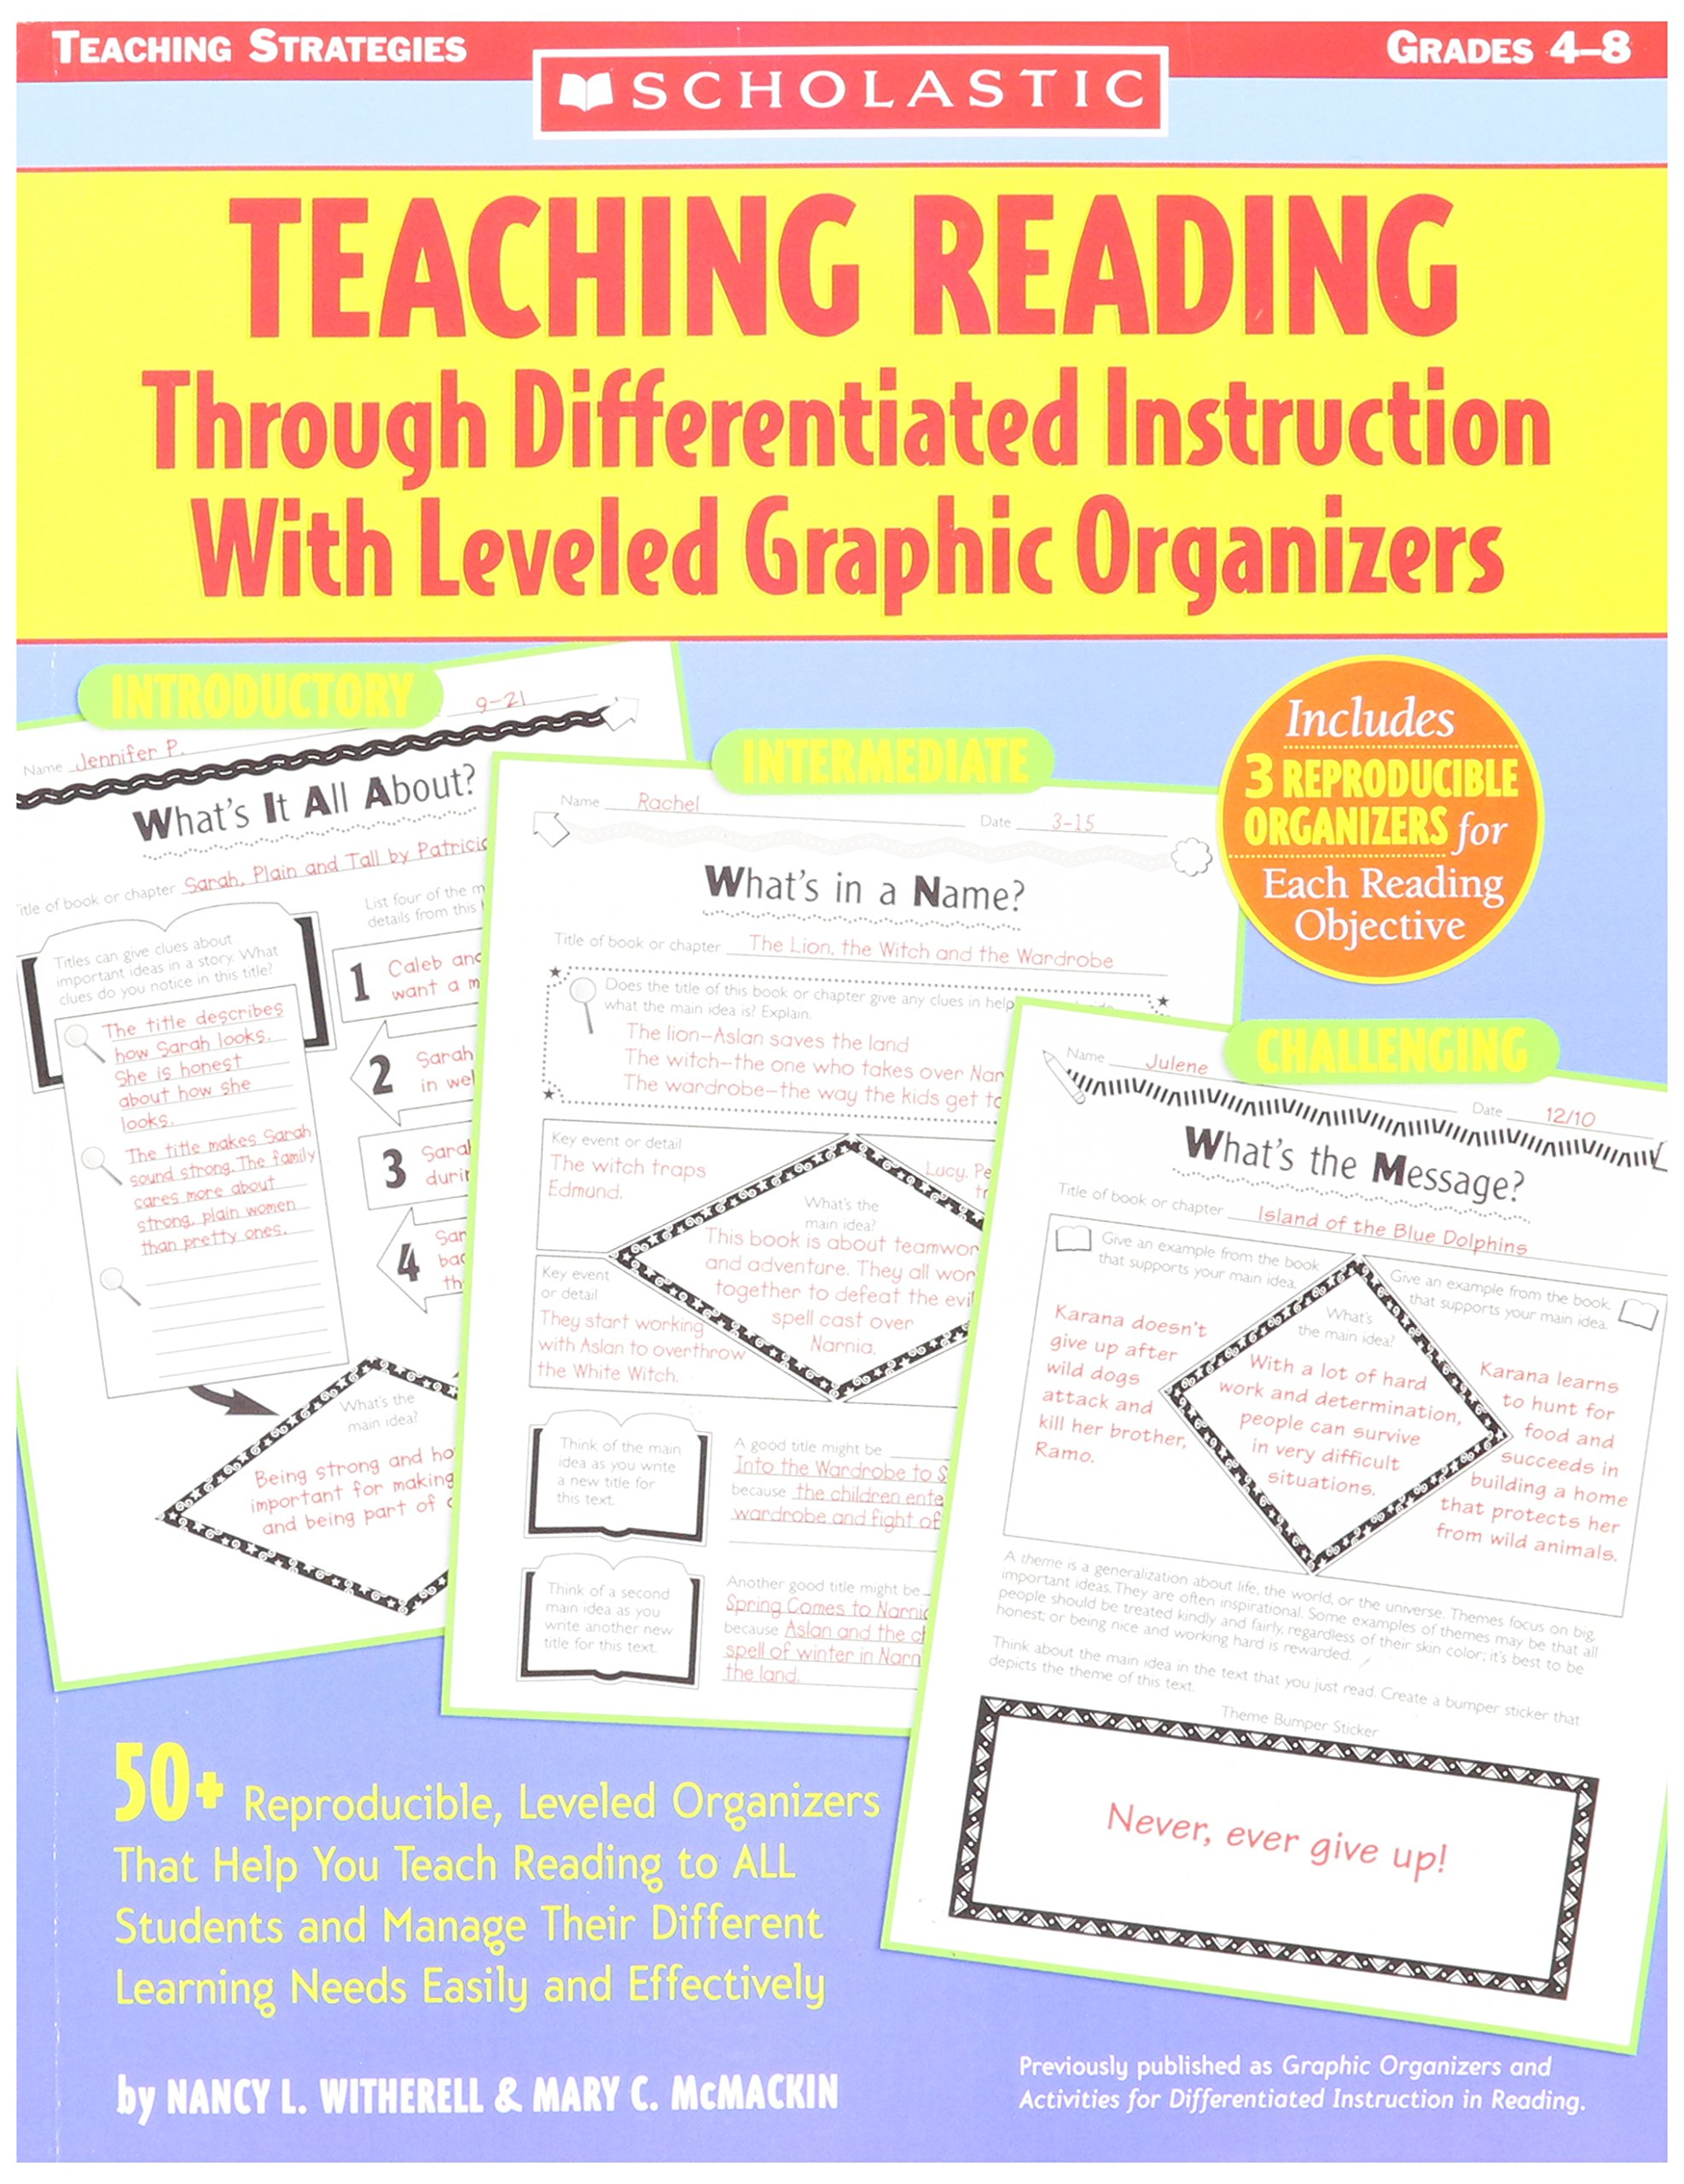 Buy Scholastic Graphic Organizers And Activities For Differentiated